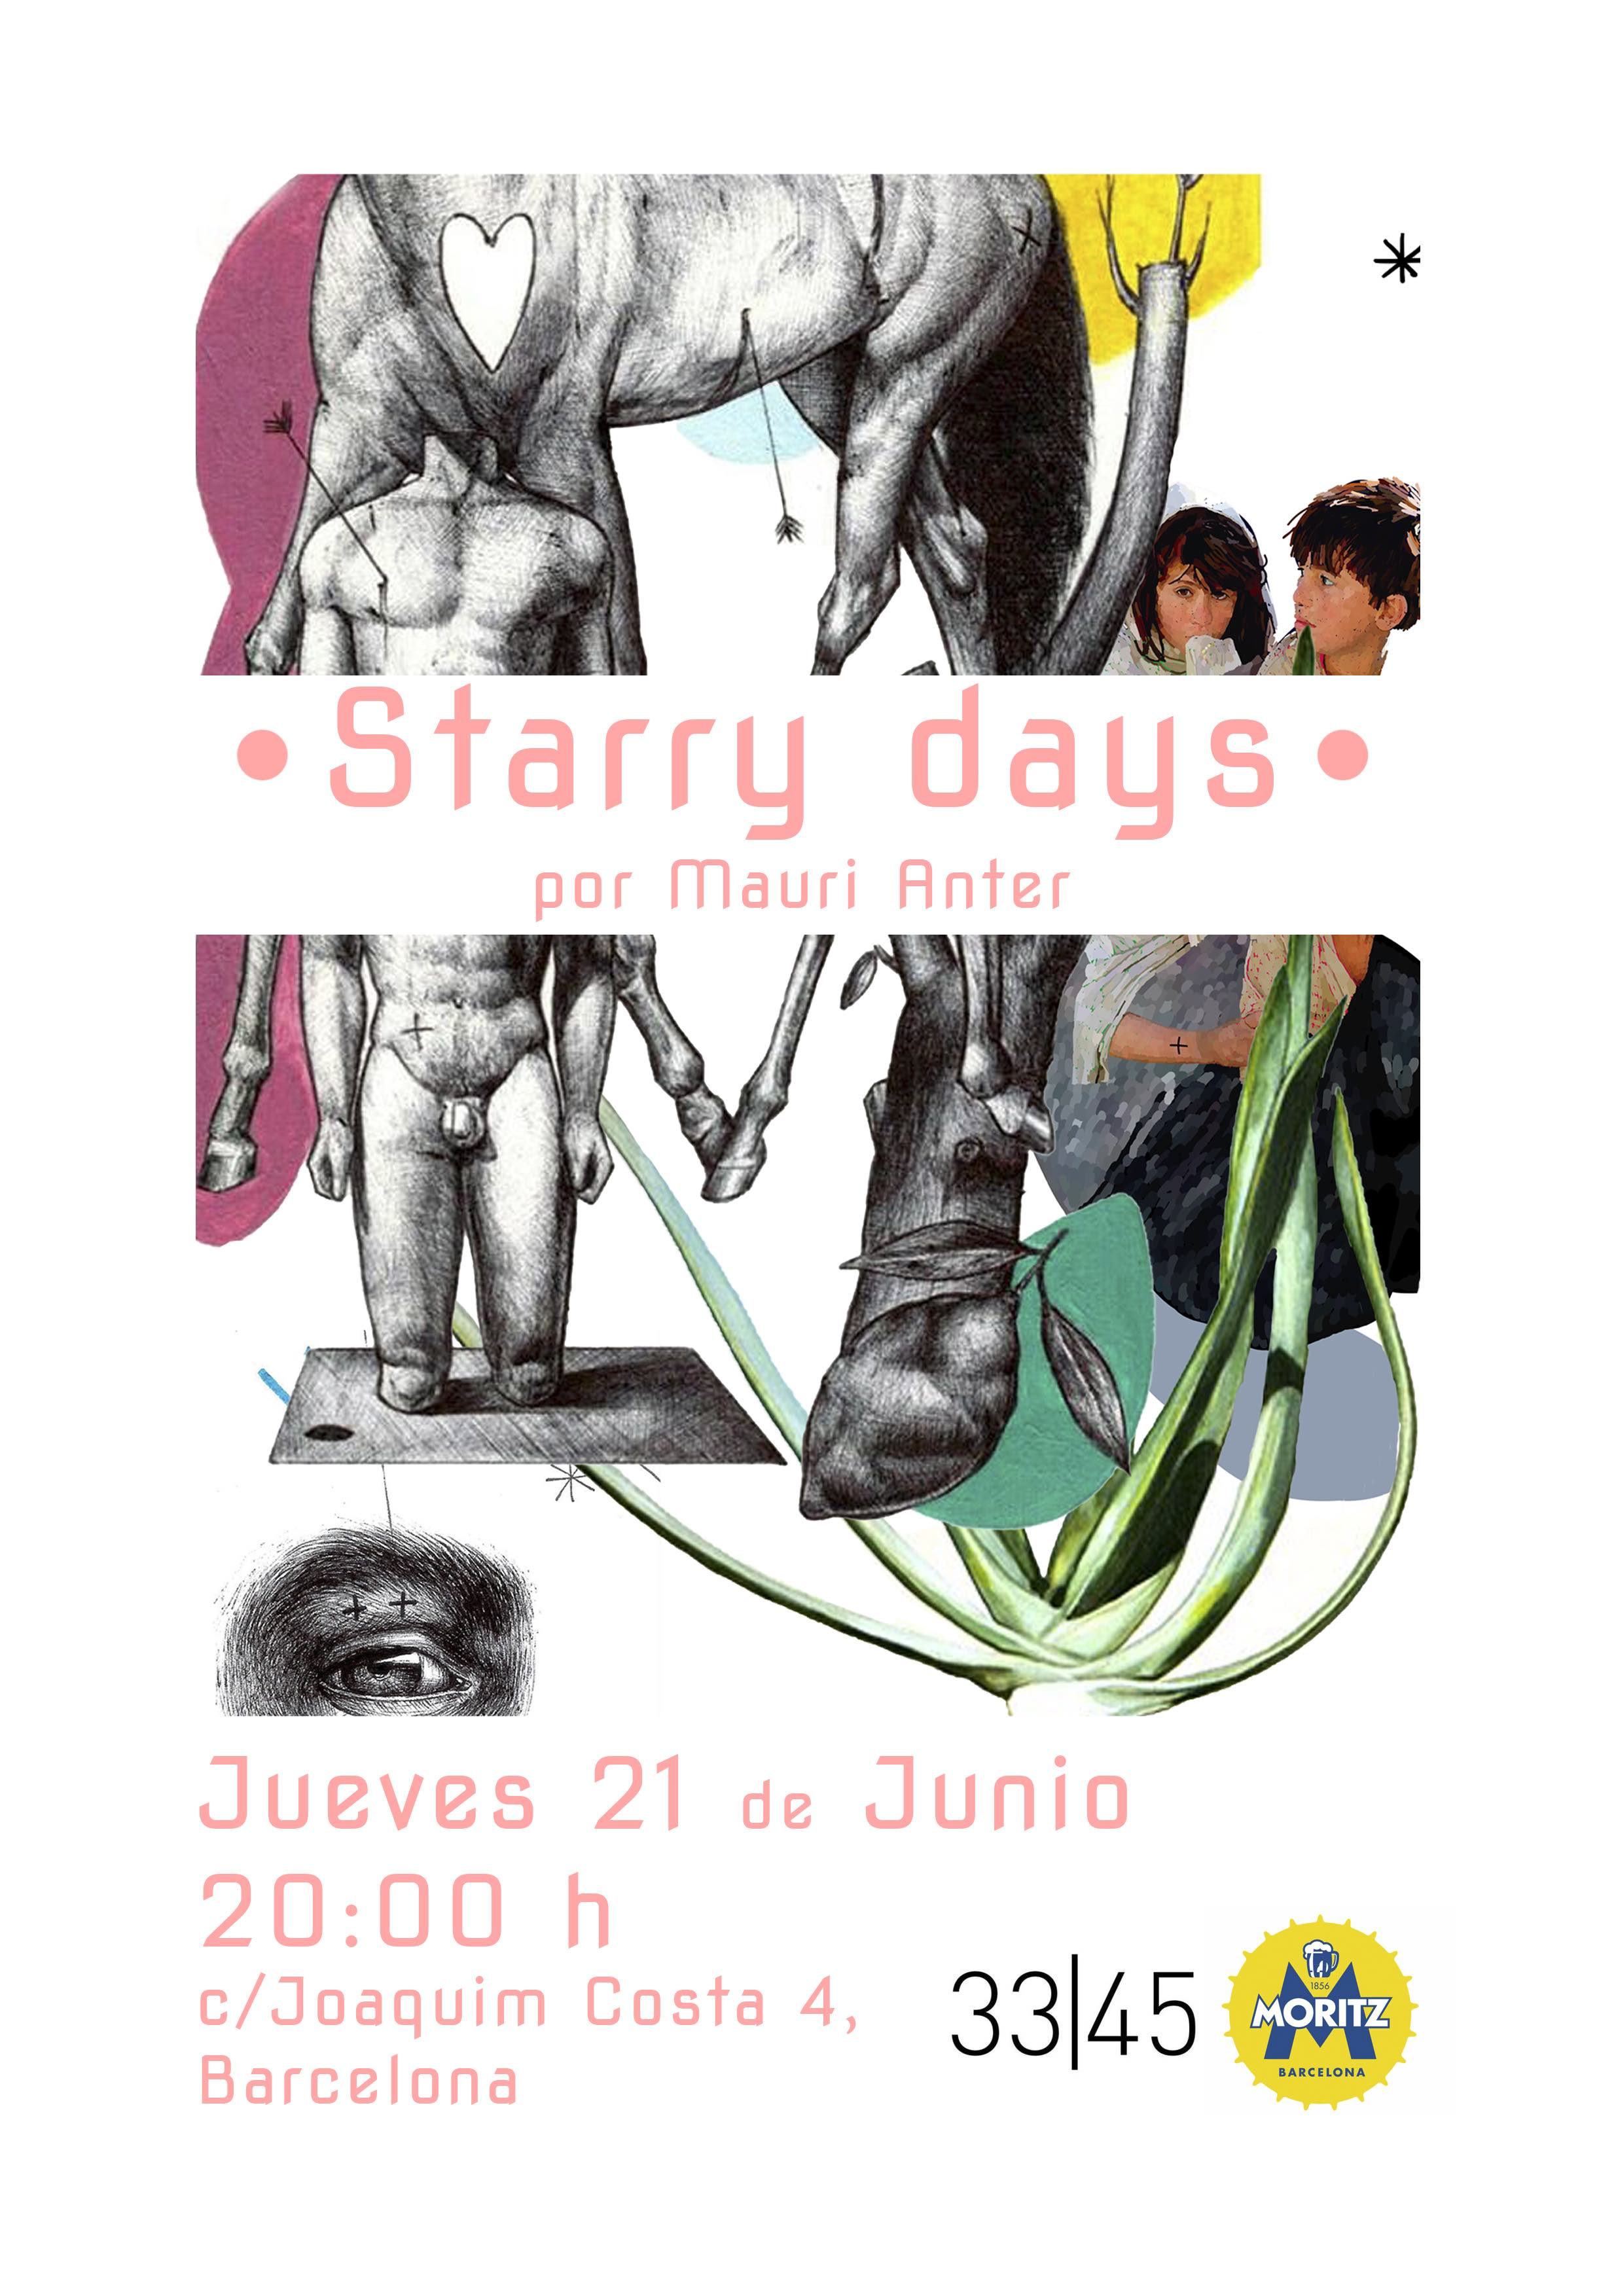 Starry days por Mauri Anter